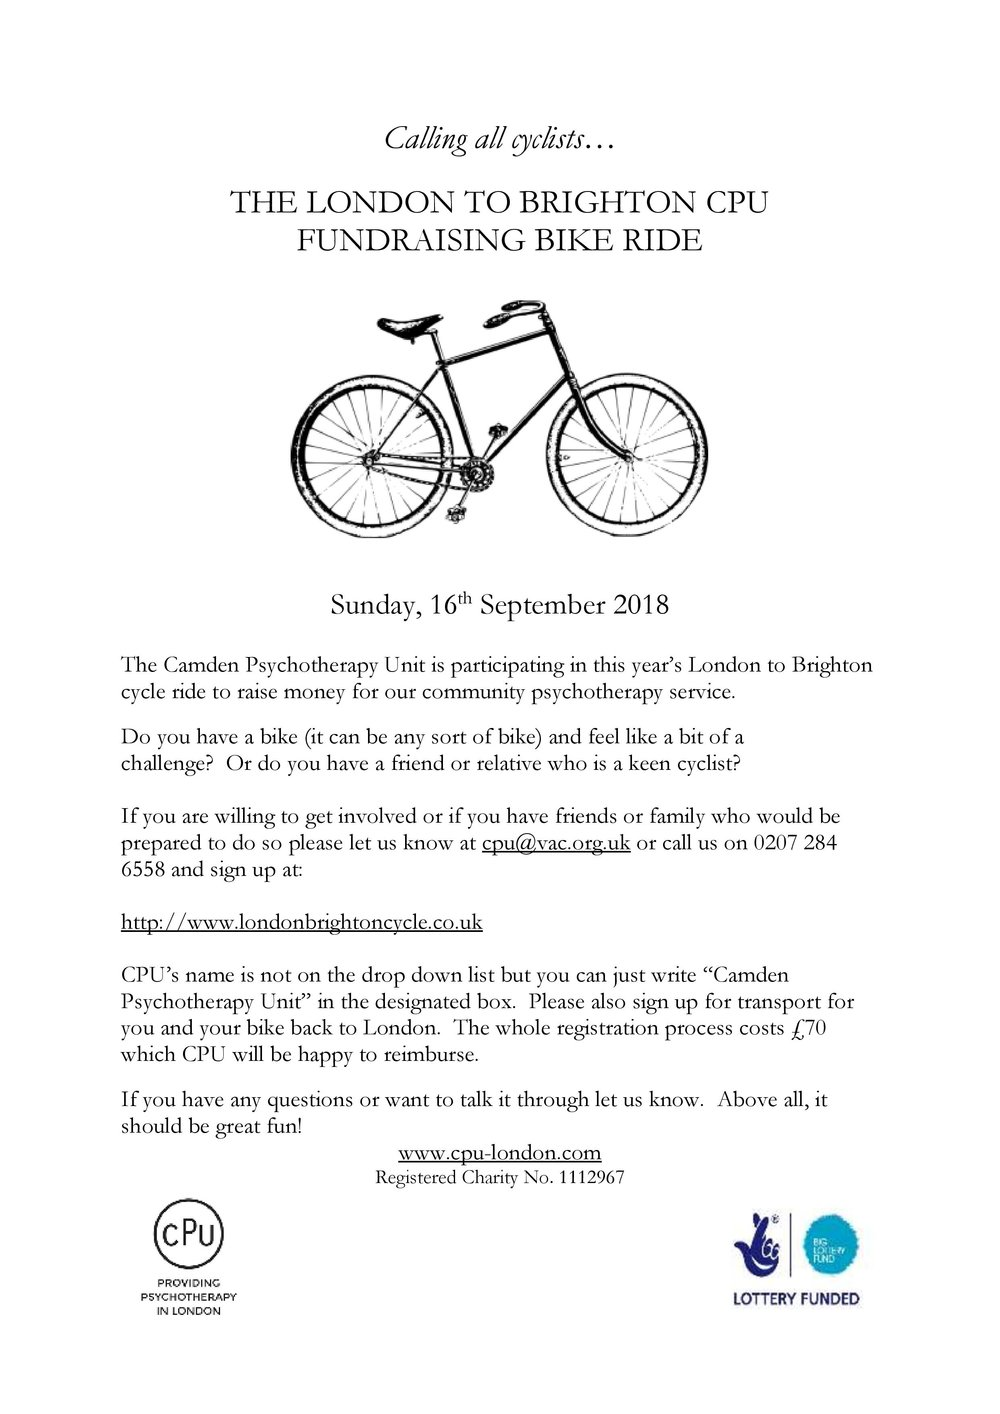 Bike Ride Flyer.jpg